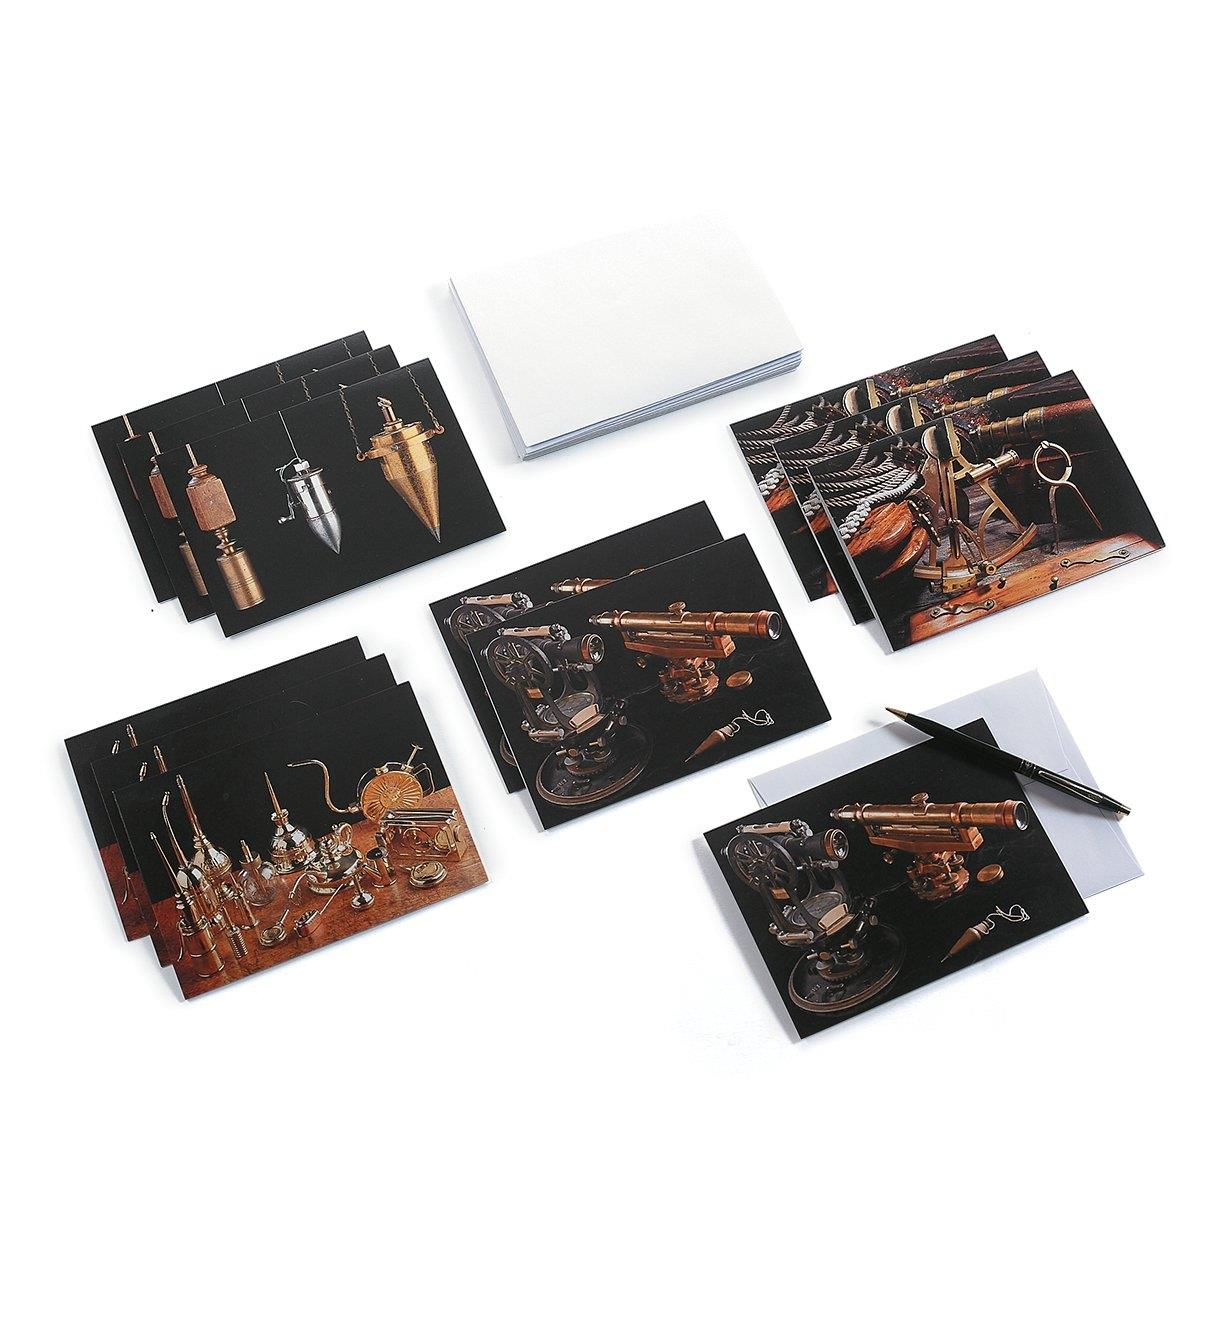 50K1426 - Lee Valley Note Cards, set of 12